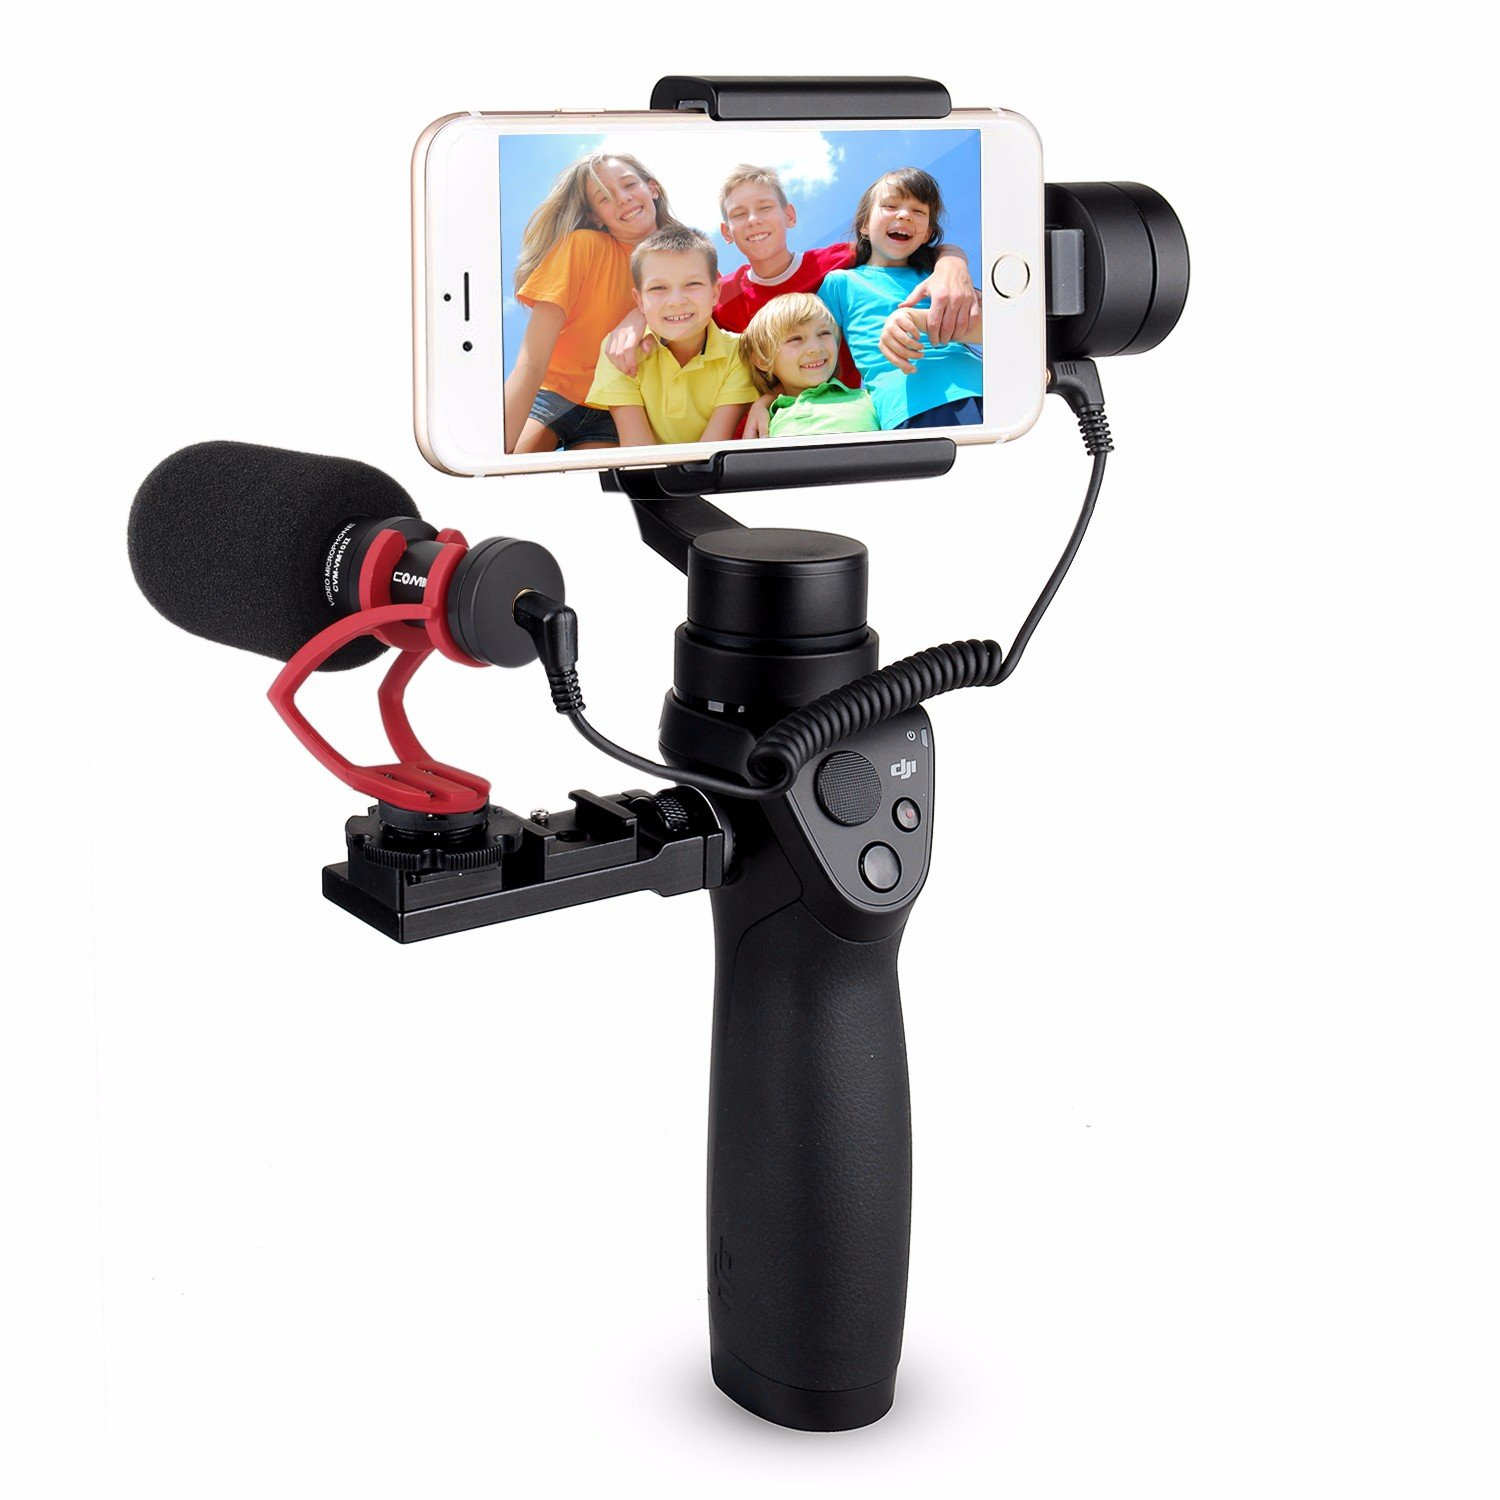 EACHSHOT Comica CVM-VM10 II Cardioid Directional Shotgun Video Microphone for DJI OSMO Mobile Plus Smartphone GoPro and Micro Camera with Black Shock-Mount Windscreen With Universal Mount (Red)